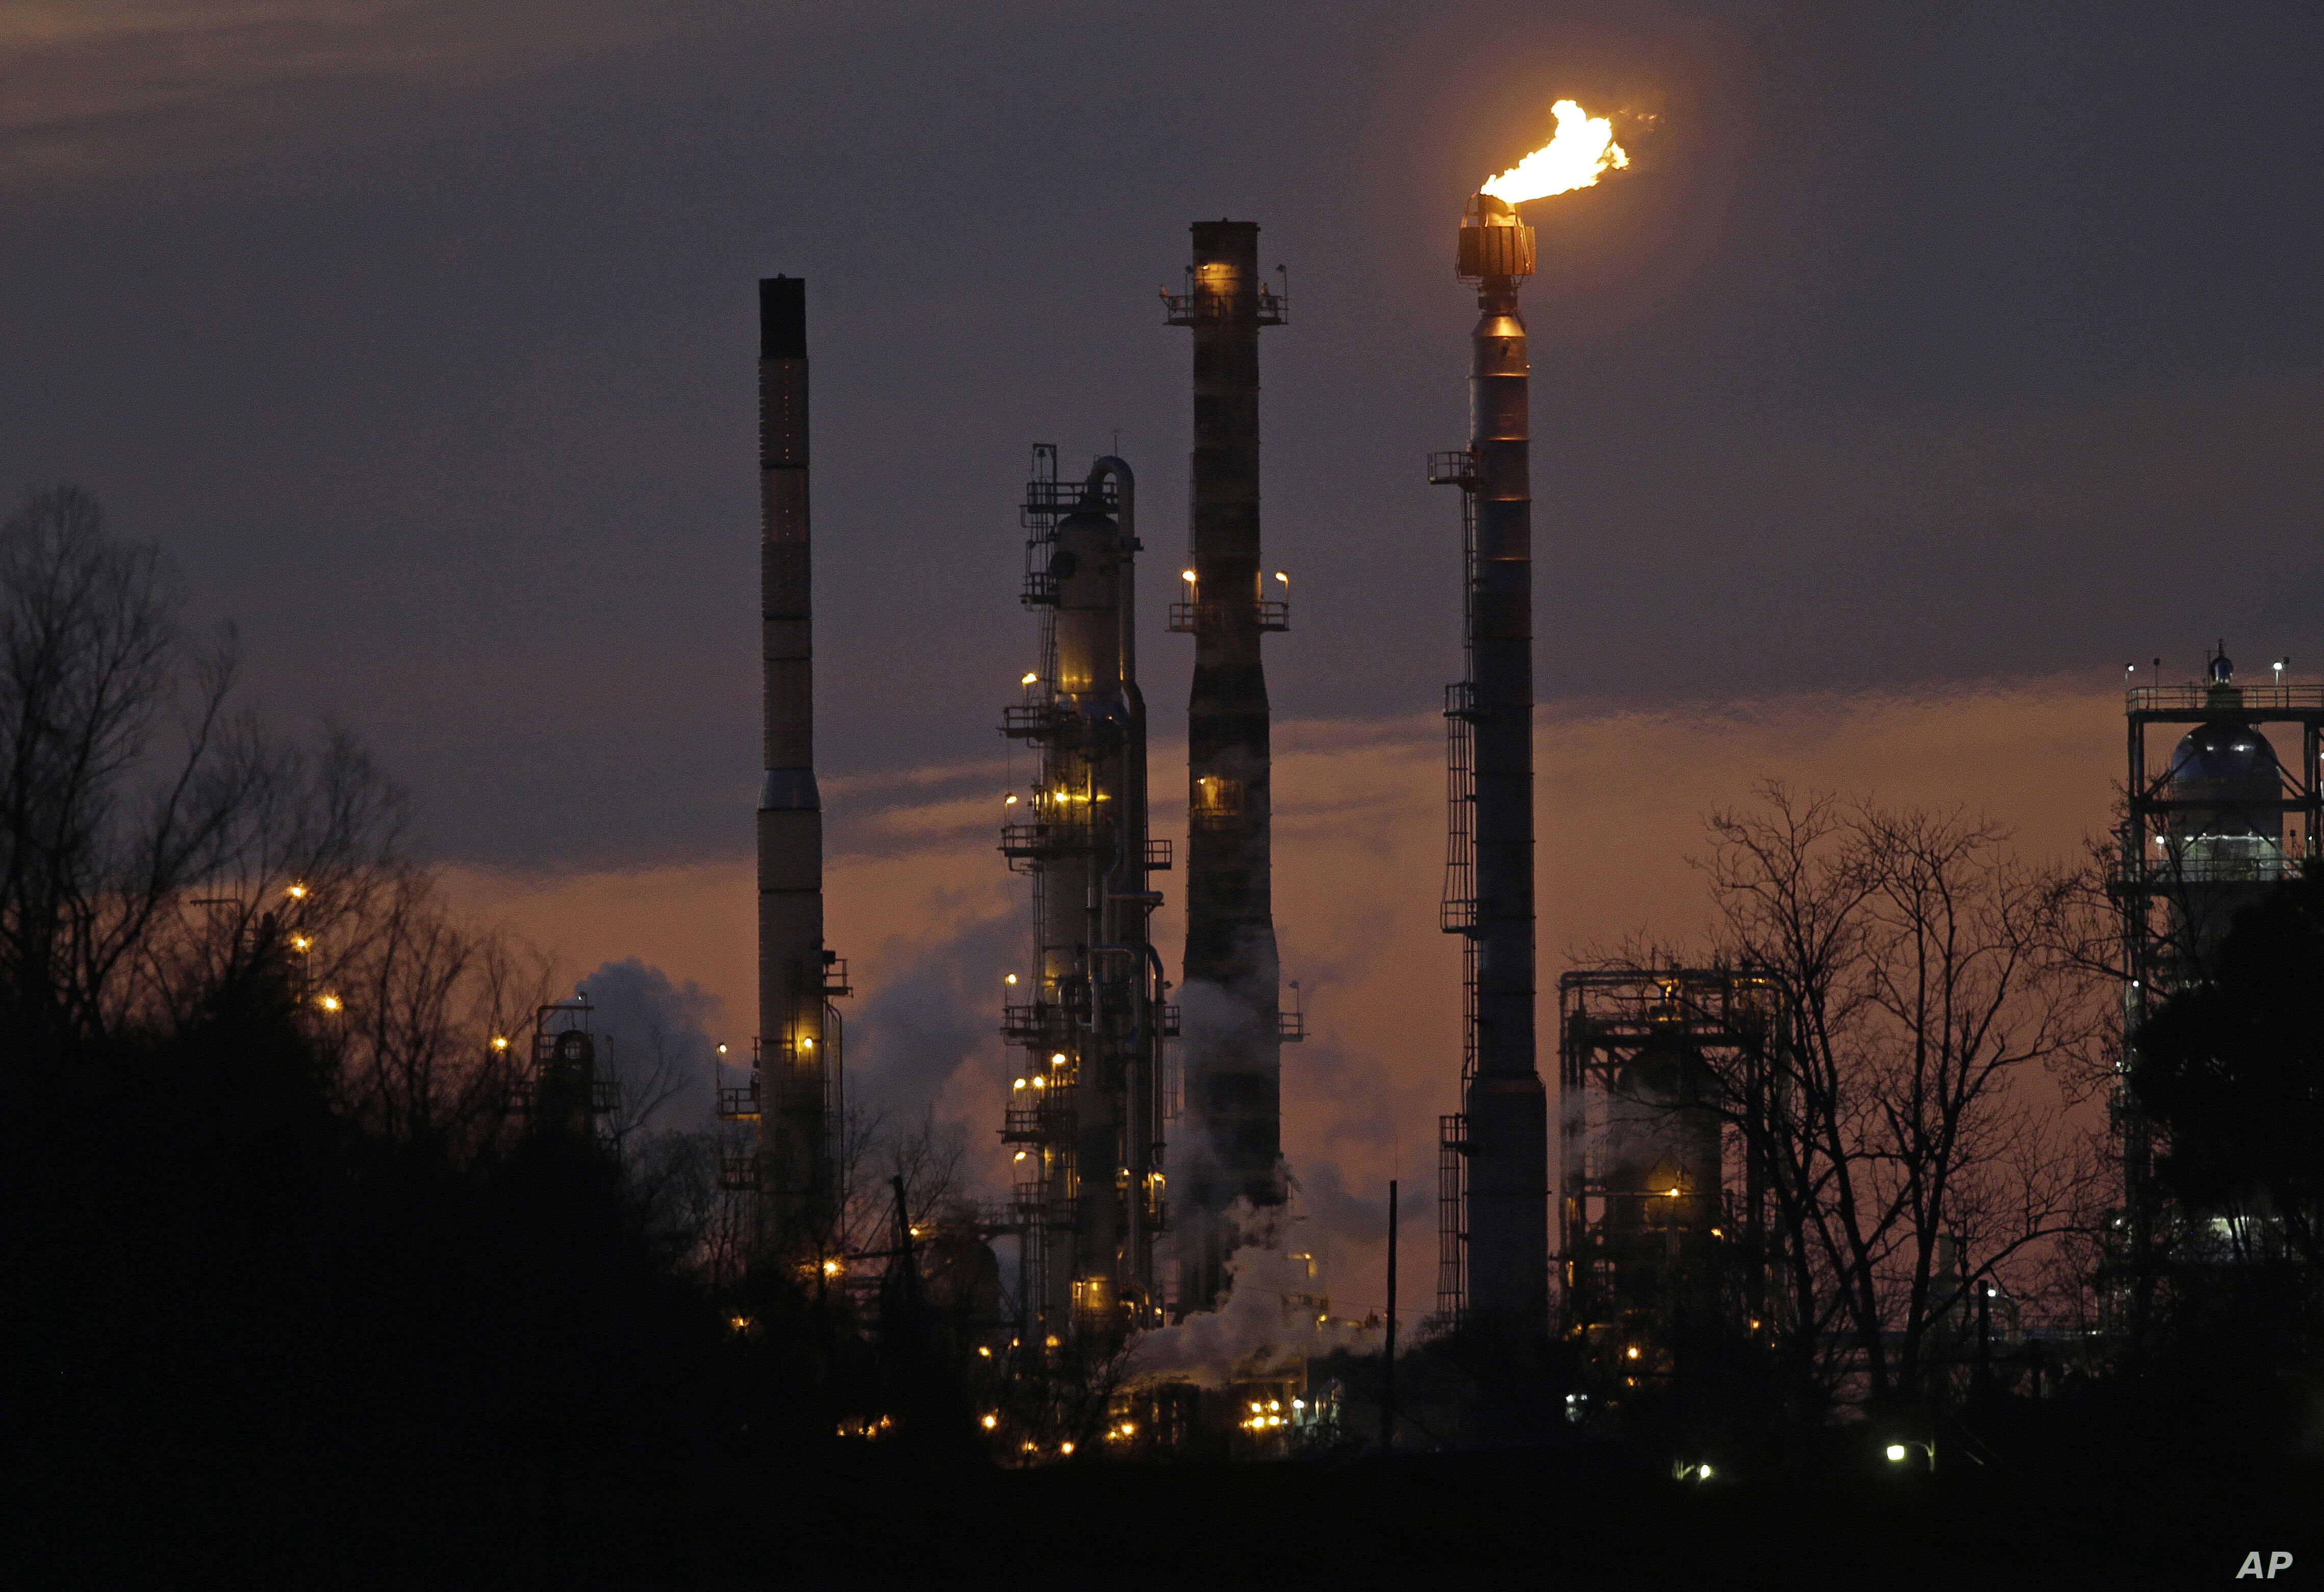 FILE - Stacks and burn-off from the ExxonMobil refinery are seen at dusk in St. Bernard Parish, Louisiana, Feb. 13, 2015.